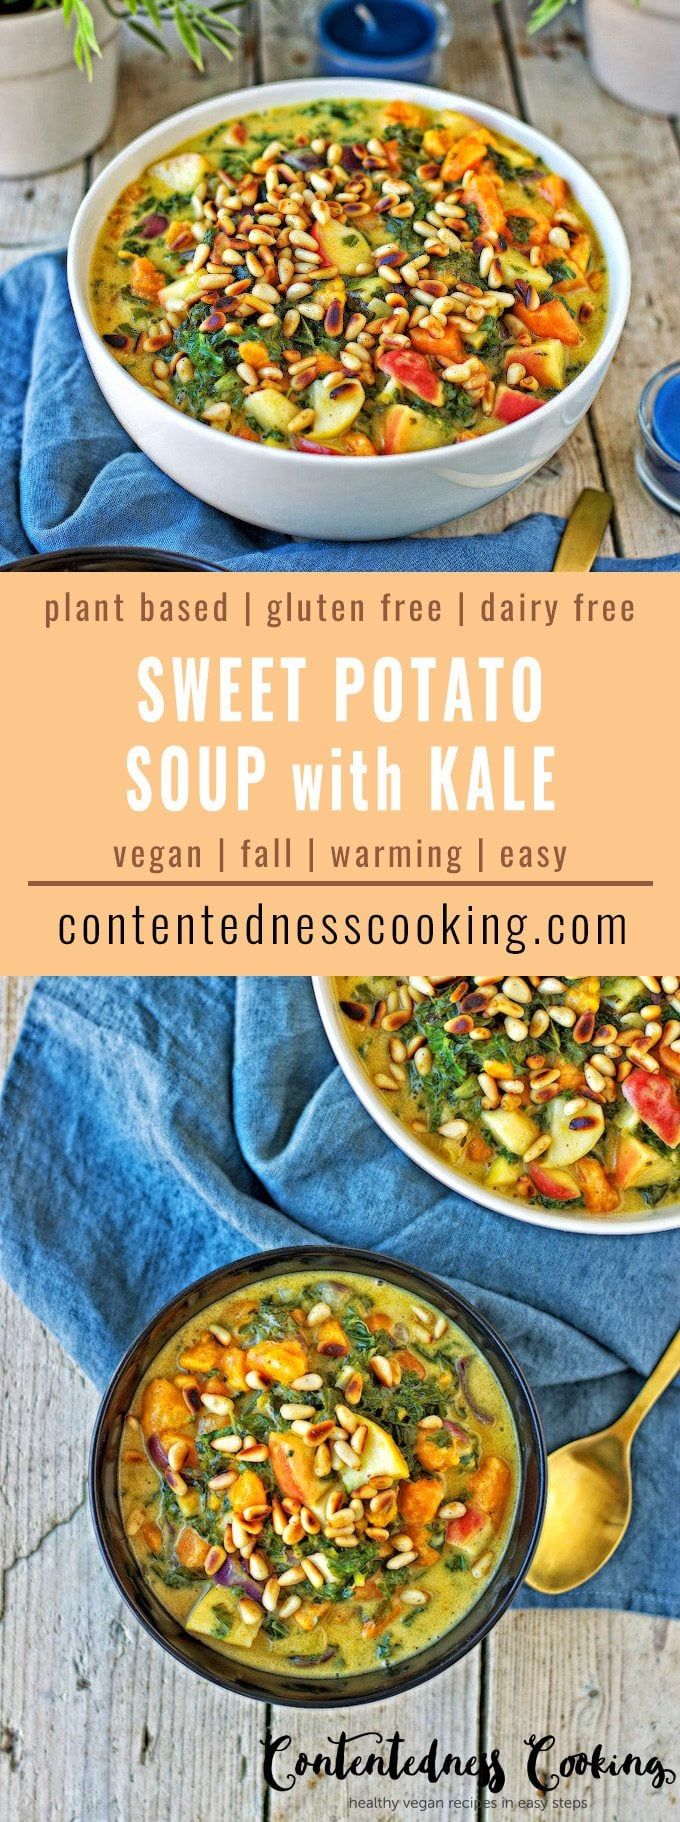 Vegan Sweet Potato Soup with Kale